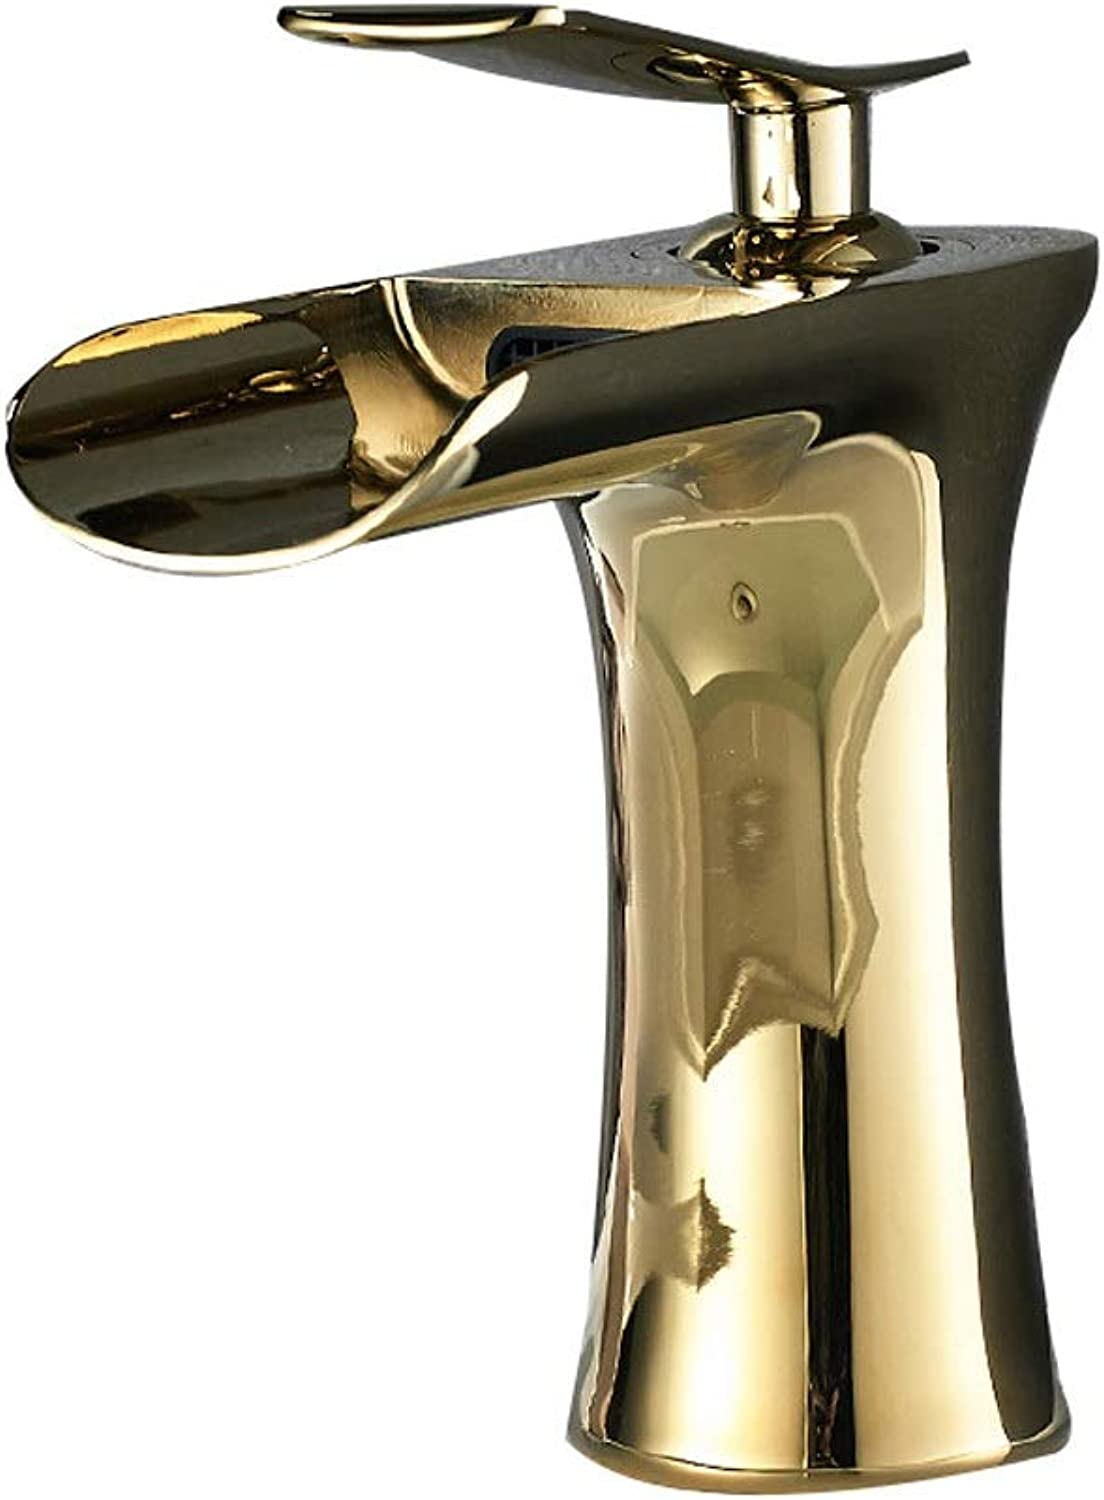 Fanxu Bathroom Sink Faucet, All-Copper Waterfall Single-Hole Mixing Faucet (3 colors, 2 Styles) (color   goldB)